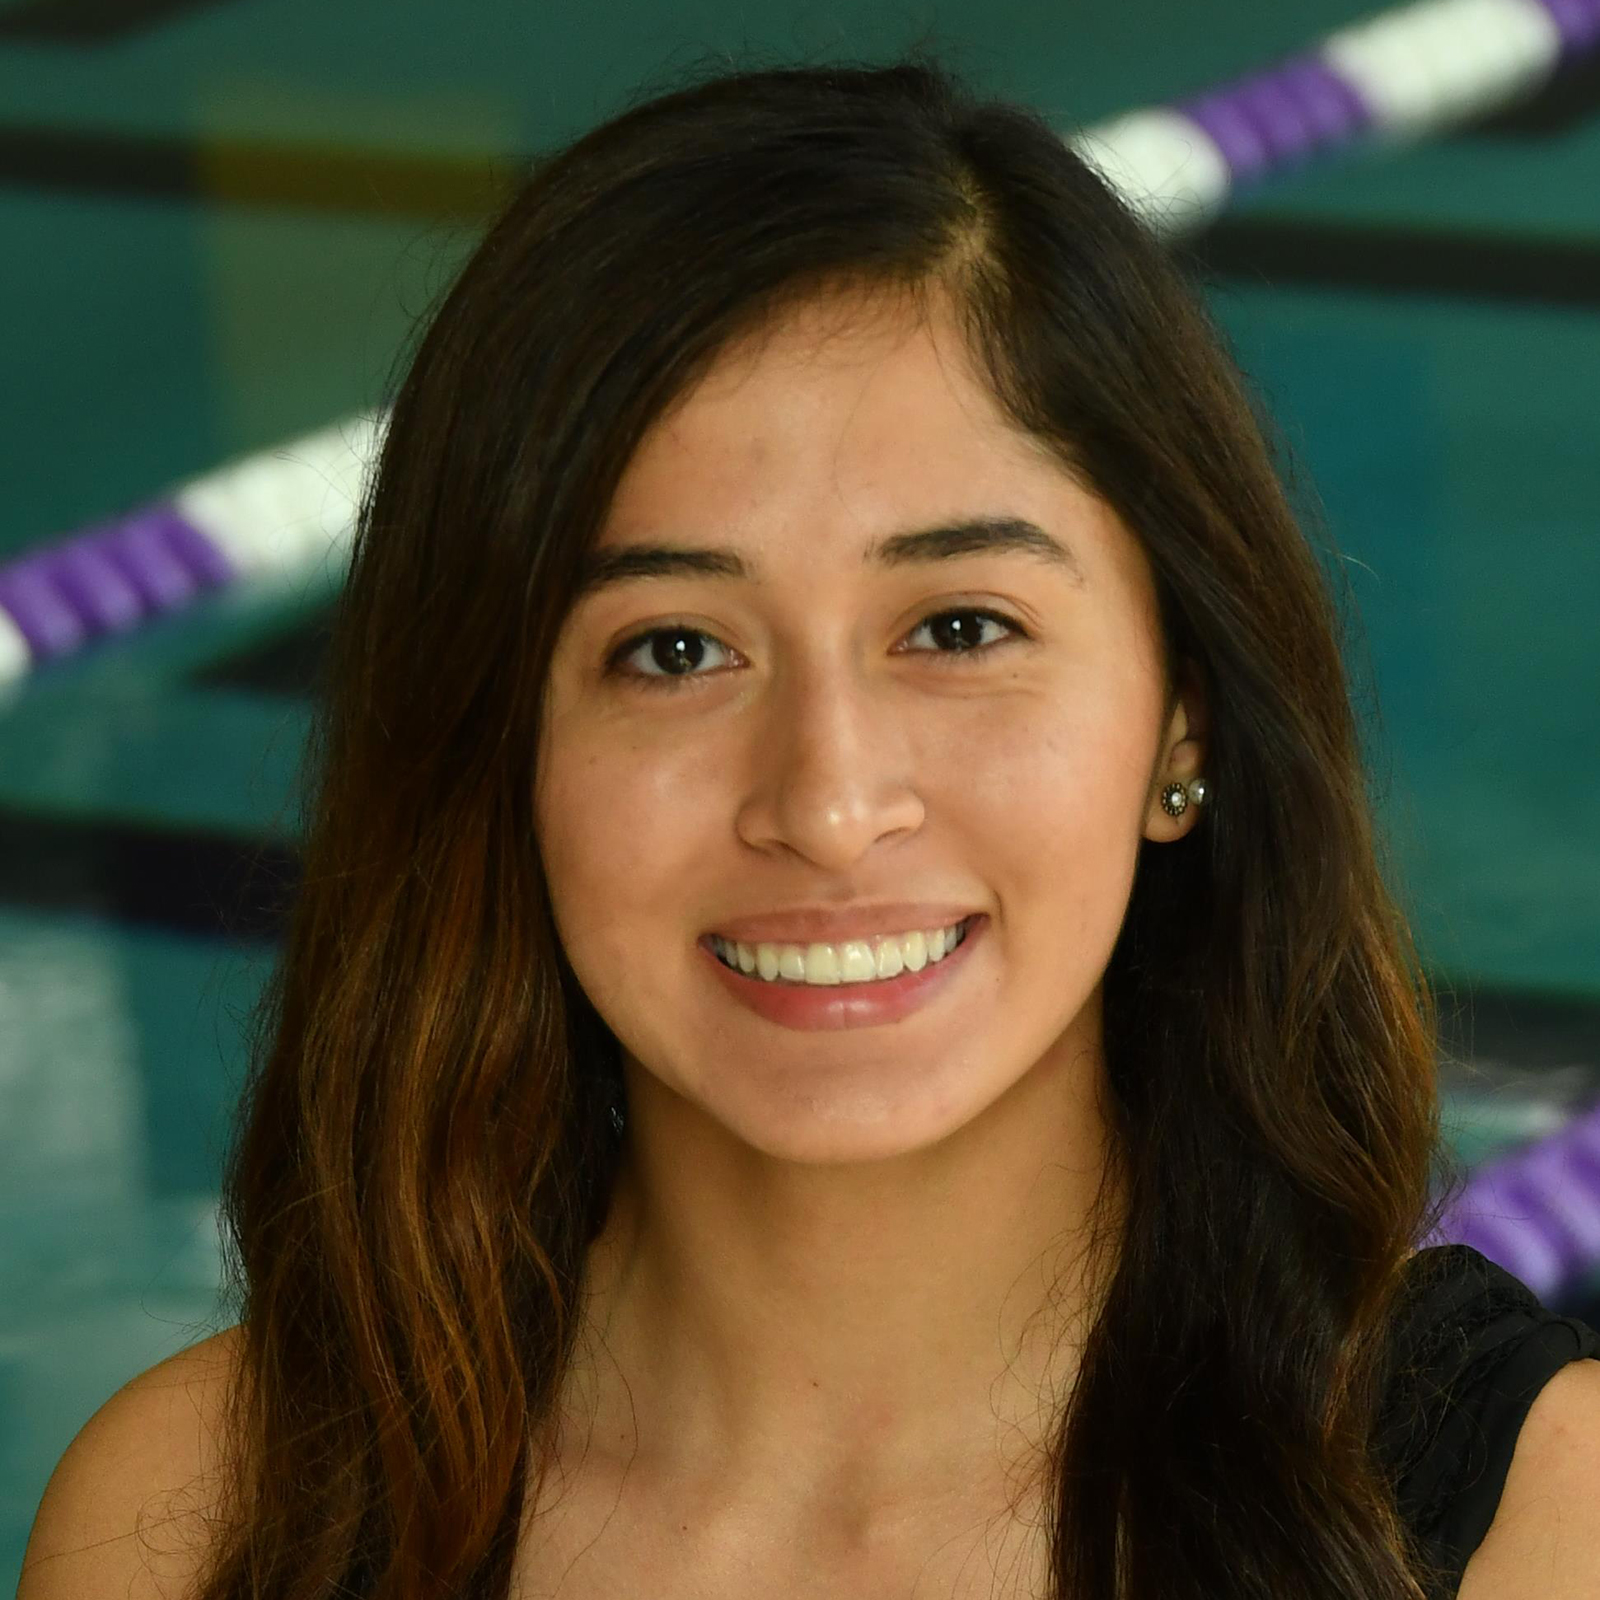 Olivet Tigers_athletics_swimming_swim_NAIA_Swimmer of the Month honor_Andrea Vega_2018_Web.jpg